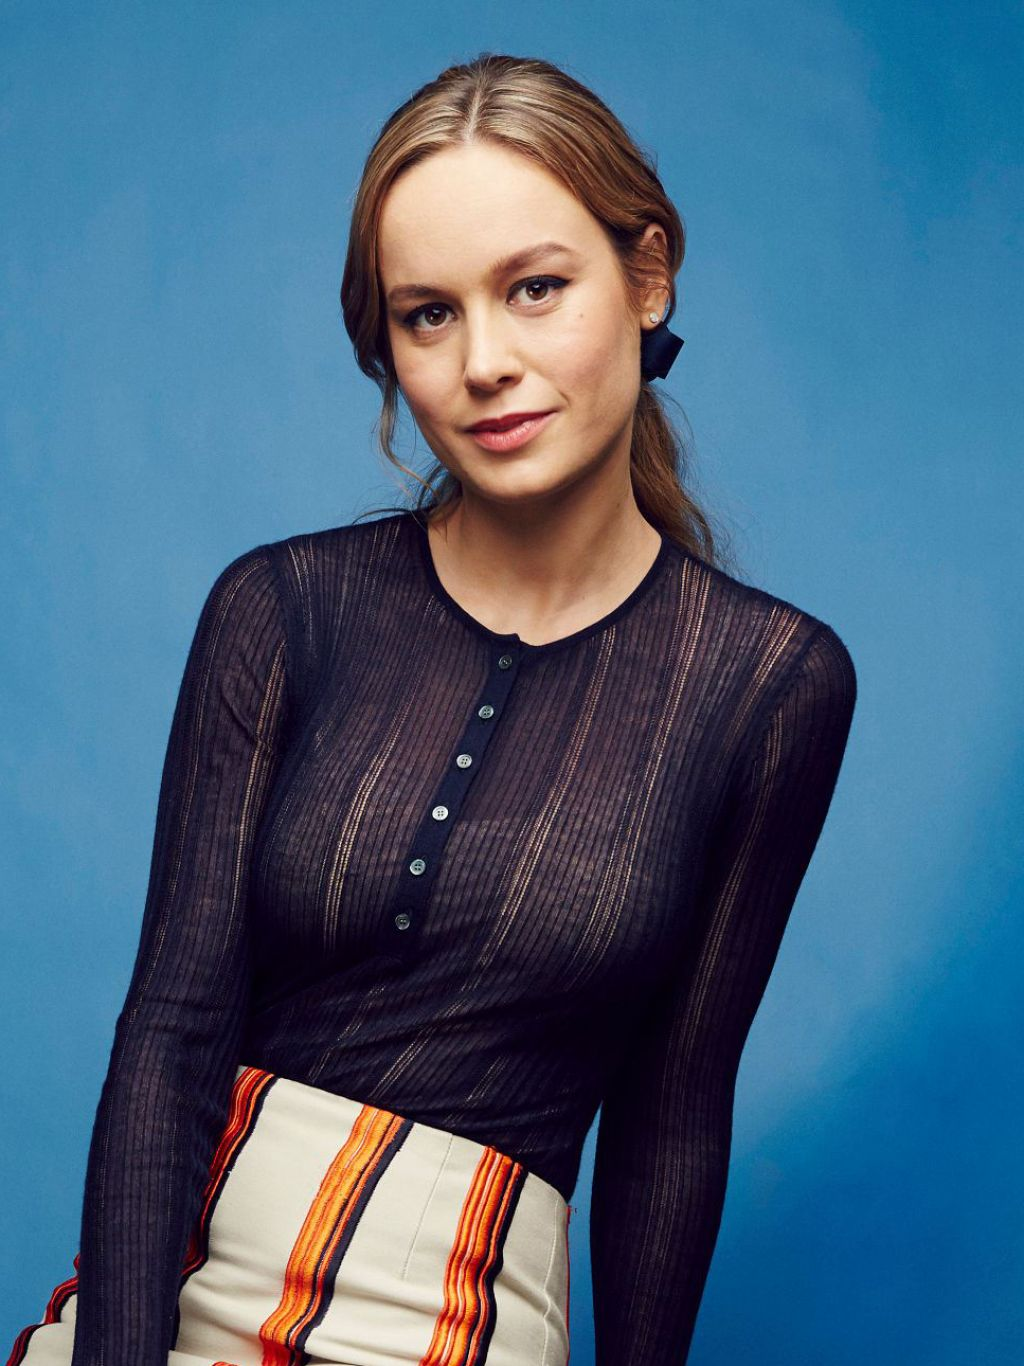 brie-larson-portraits-for-the-film-indep